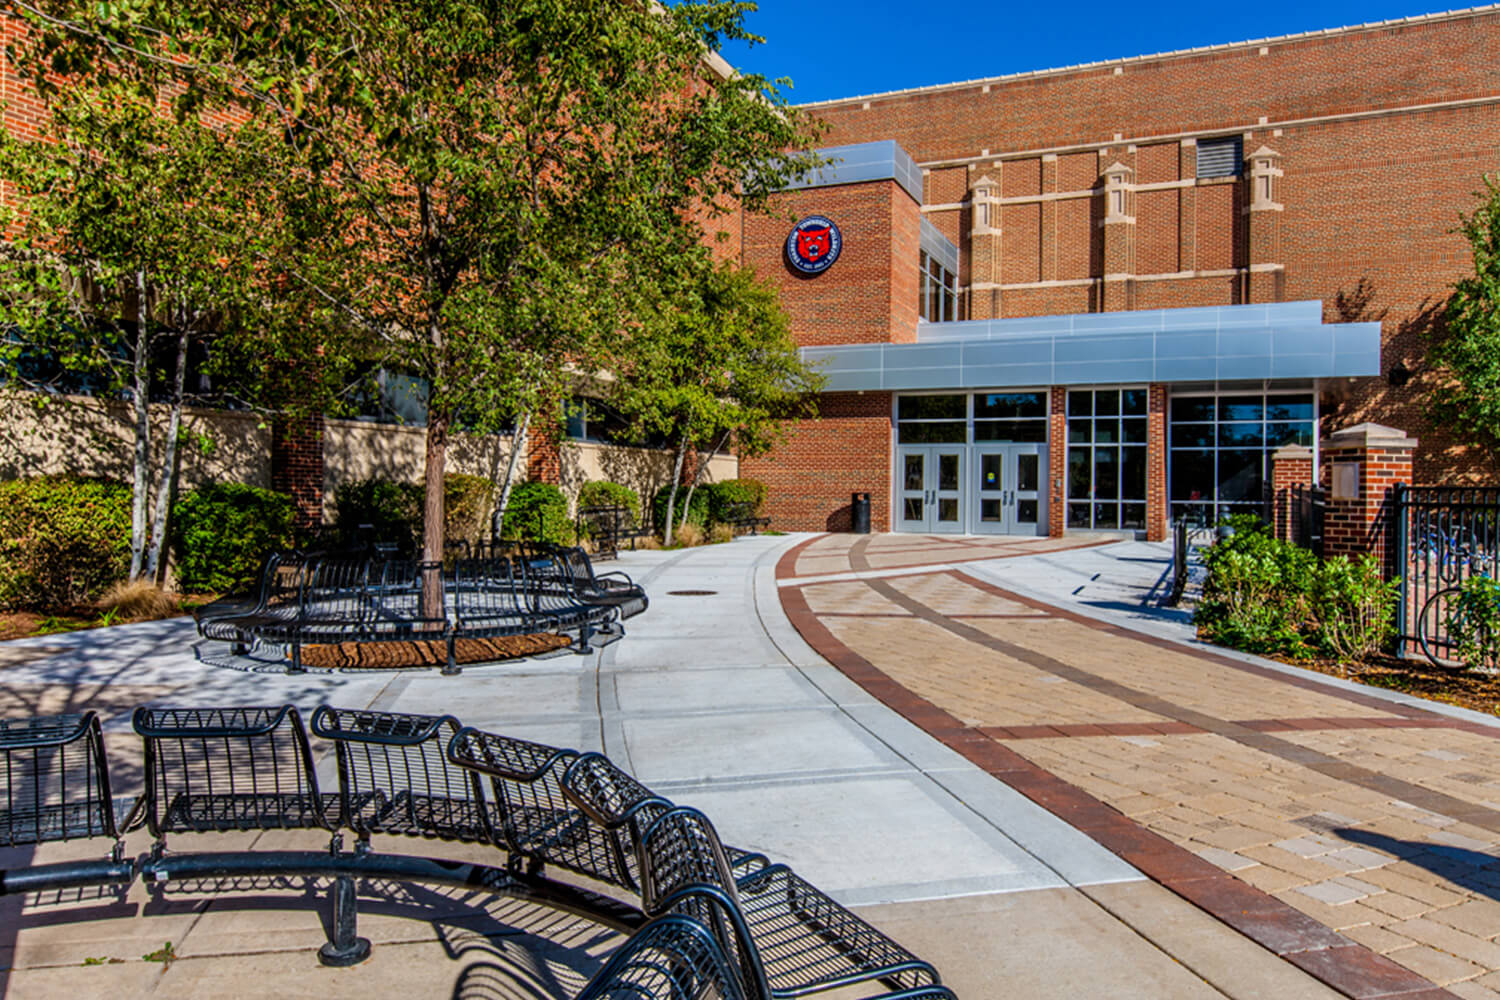 Evanston Township High School – Entry & Renovation Project exterior